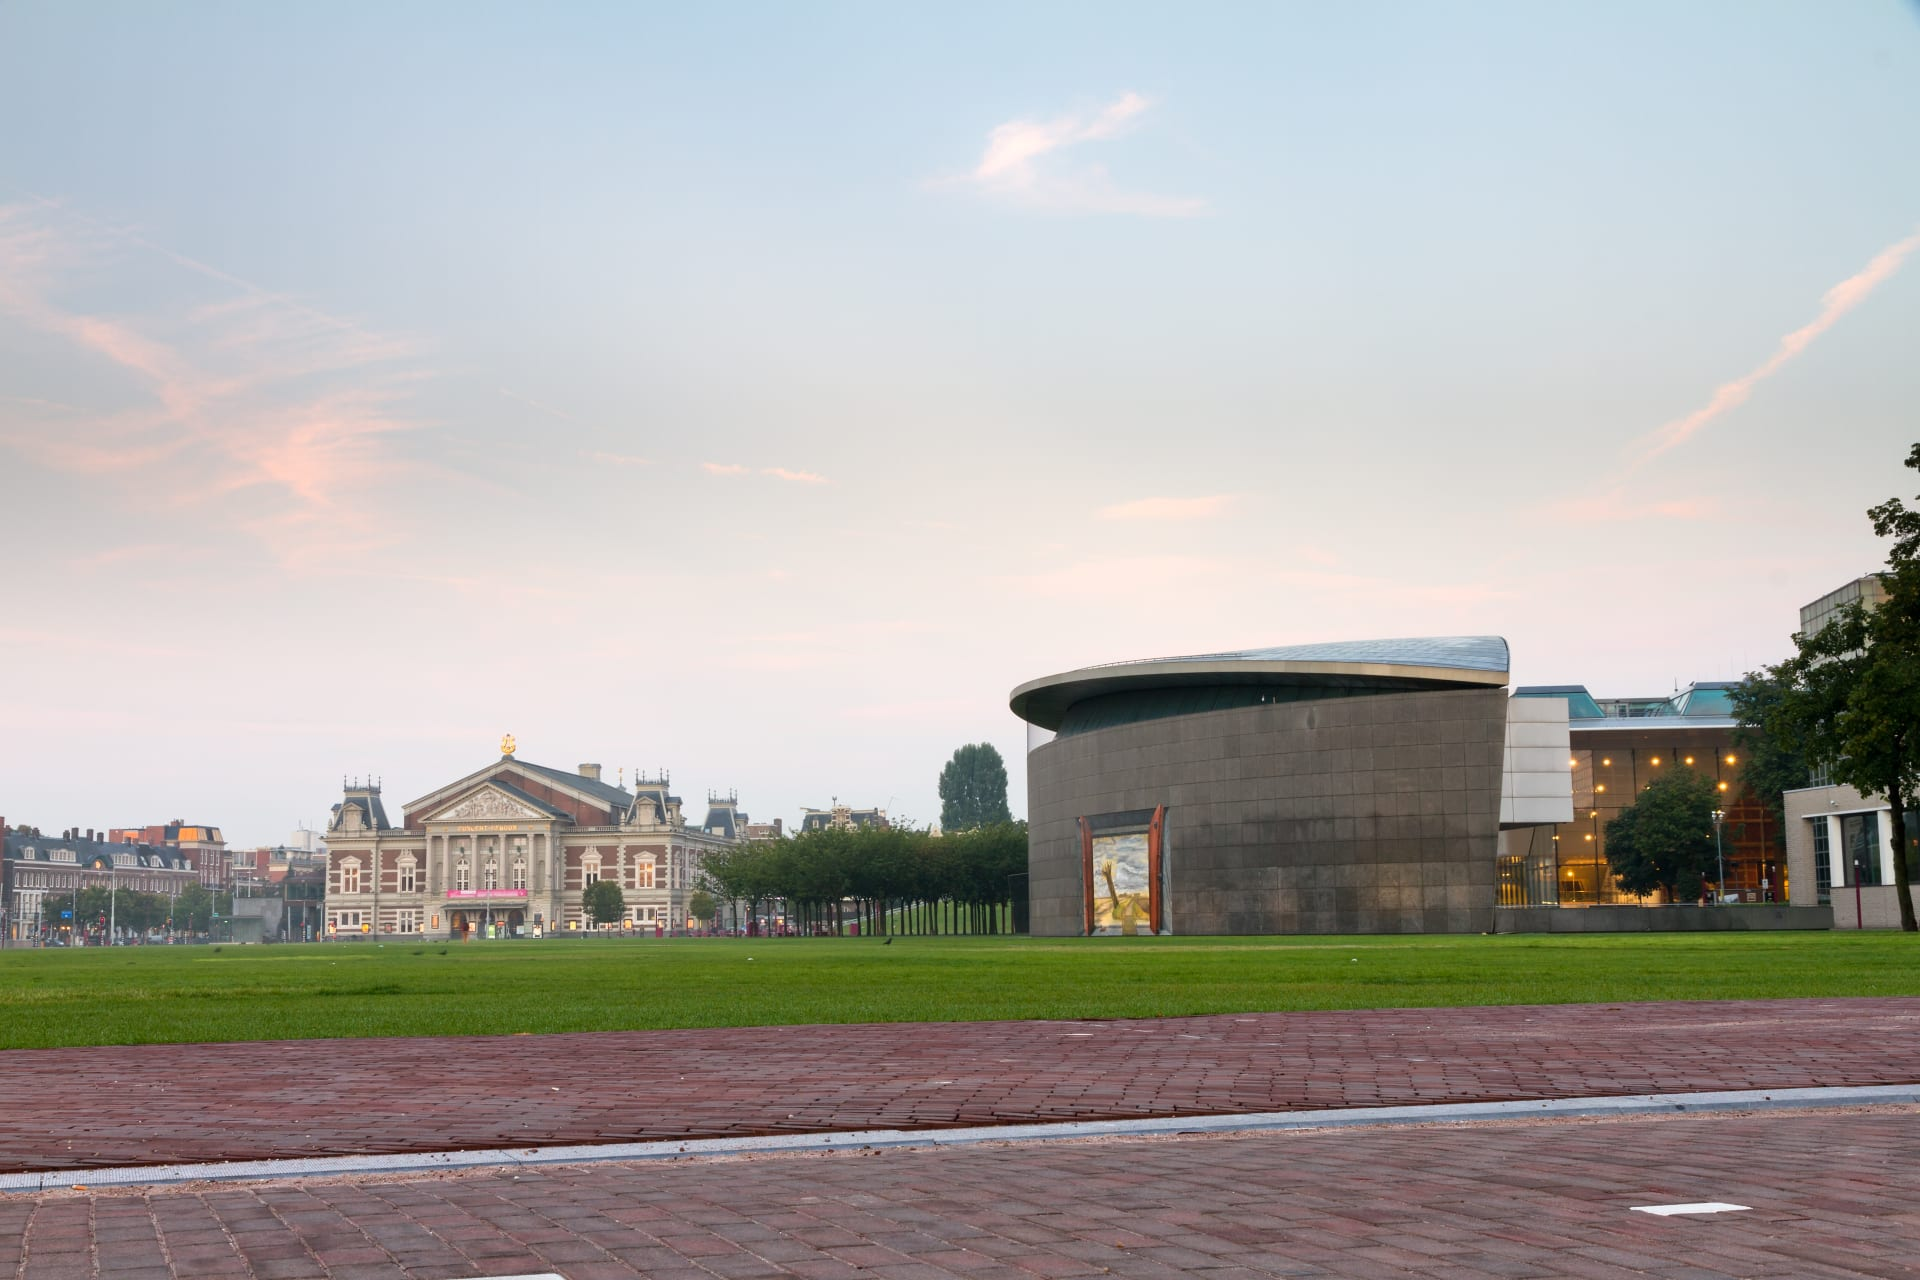 Amsterdam - Discover the Masterpieces of Vincent van Gogh in Amsterdam